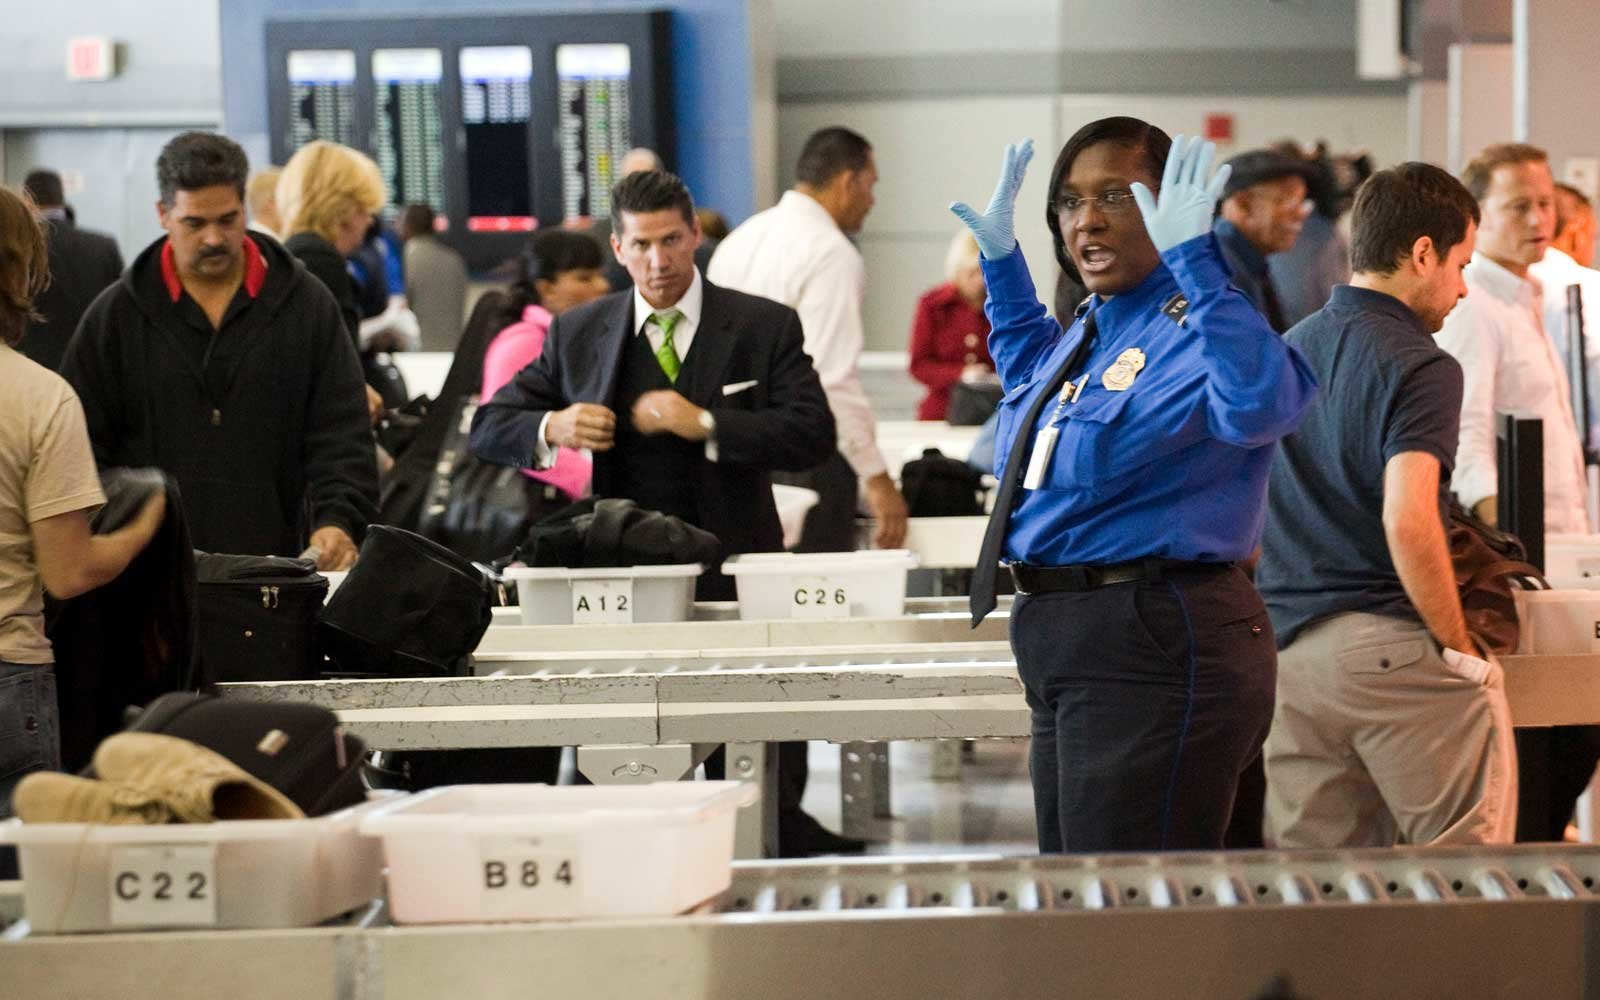 TSA: Many Employees Skipping Work 'Due To Financial Limitations'